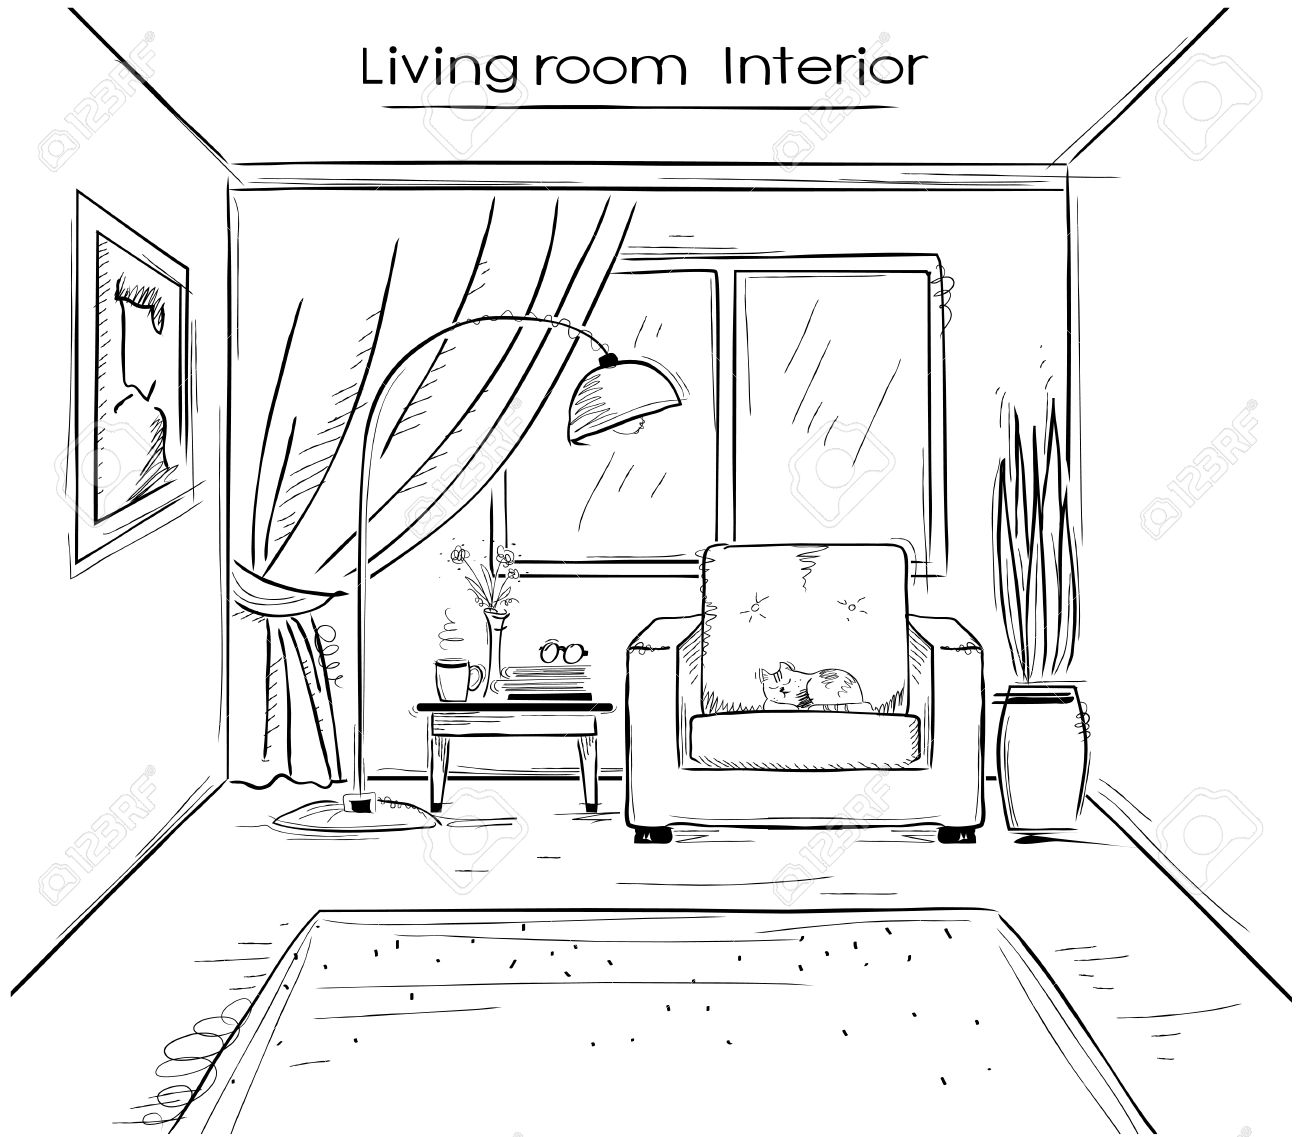 Interior sketchy illustration of living room hand drawing modern home isolated on white stock vector